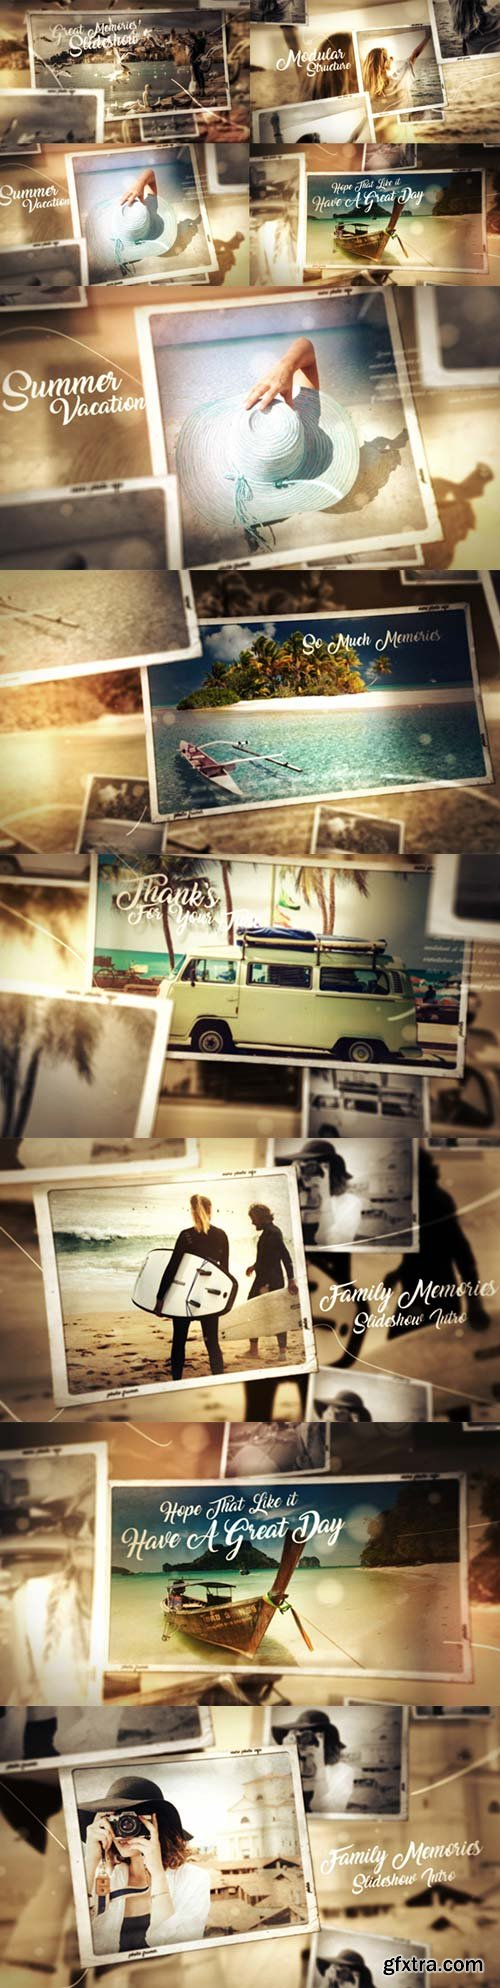 Videohive - Great Times Photo Gallery Slideshow - 22266185